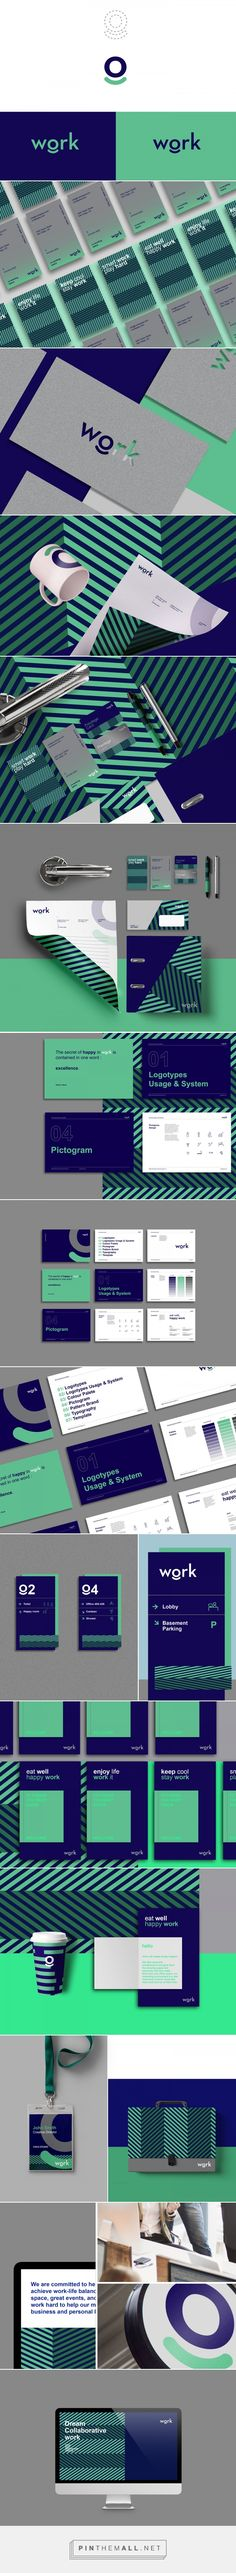 Work - Branding on Behance. Limited colour scheme of purple and green used with bold, clean logo type. 'o' is used as a device across other areas in the brand, along side the connective lines acting as a striking pattern. Corporate Identity Design, Brand Identity Design, Graphic Design Branding, Visual Identity, Brochure Design, Stationary Branding, Logo Branding, Stationery Design, Logo Inspiration